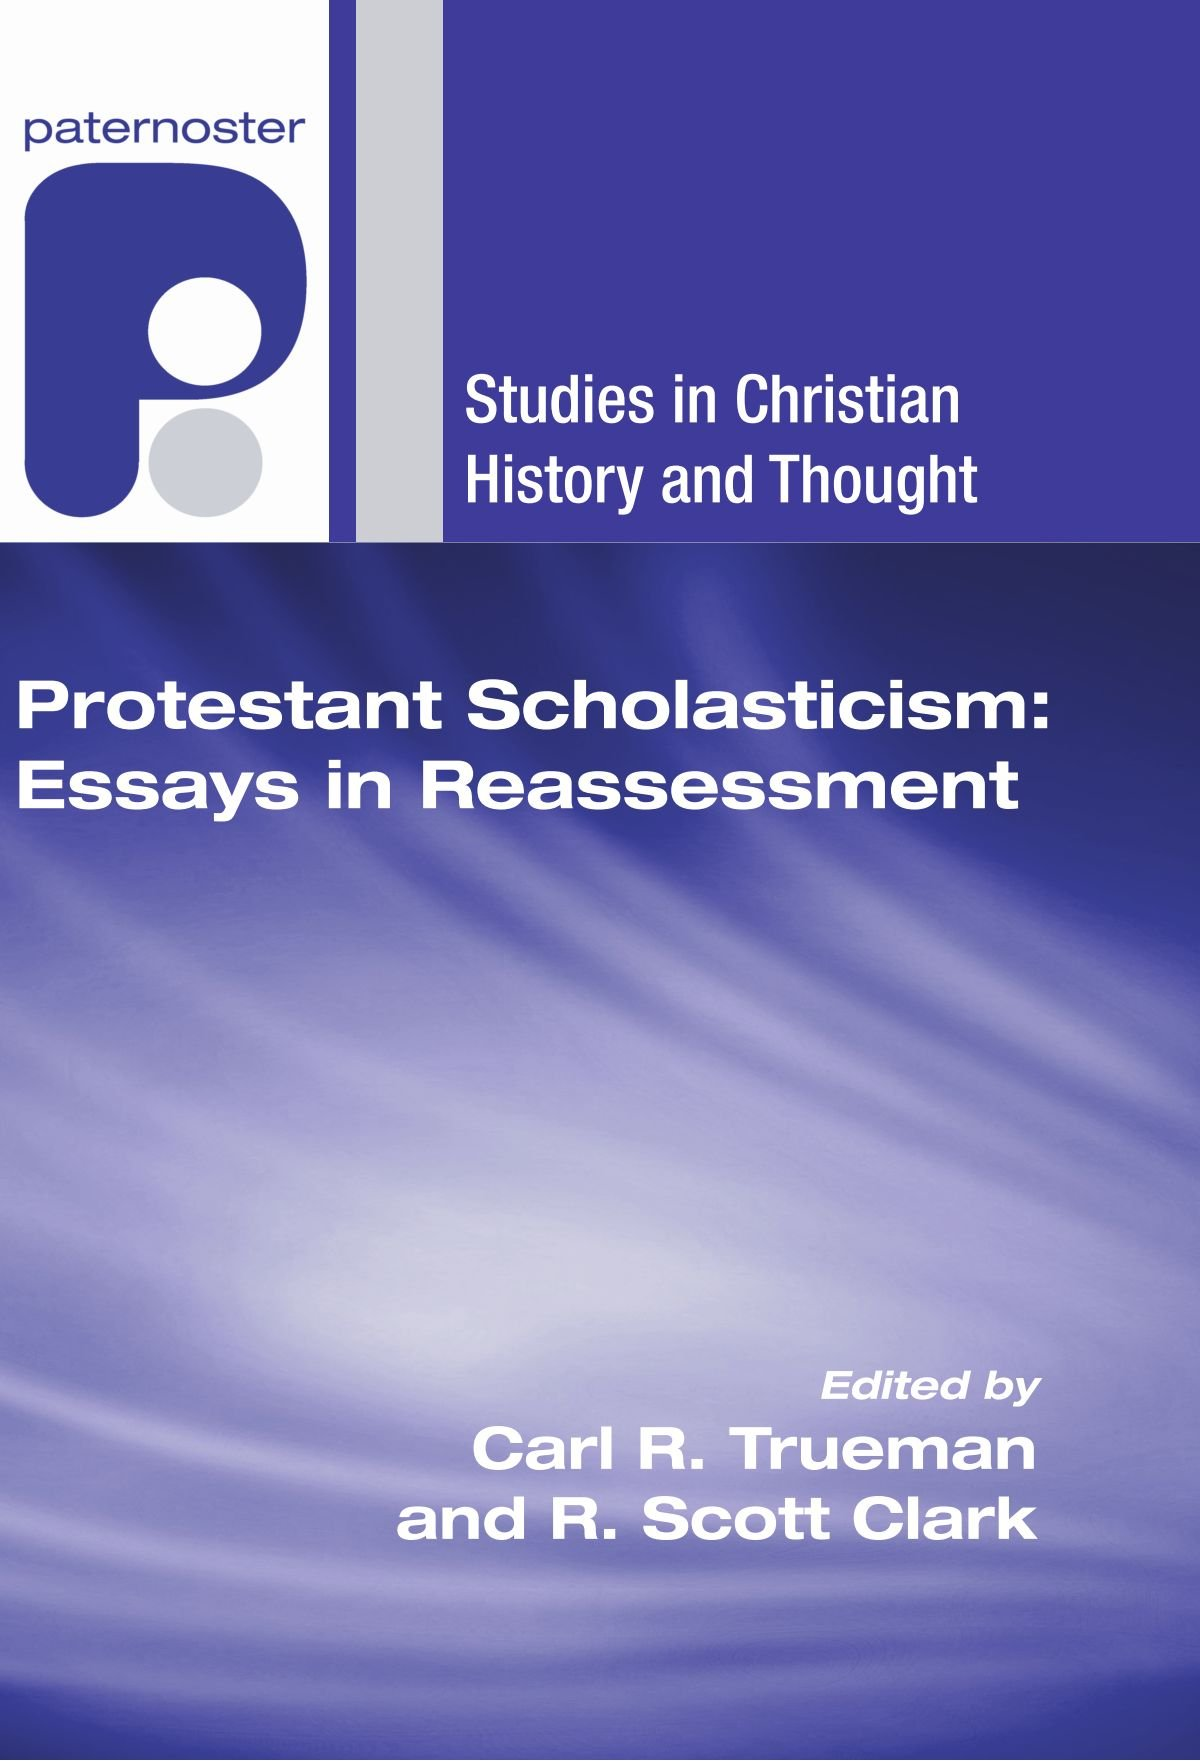 protestant scholasticism essays in reassessment studies in  protestant scholasticism essays in reassessment studies in christian history and thought carl r trueman r scott clark 9781597527880 com